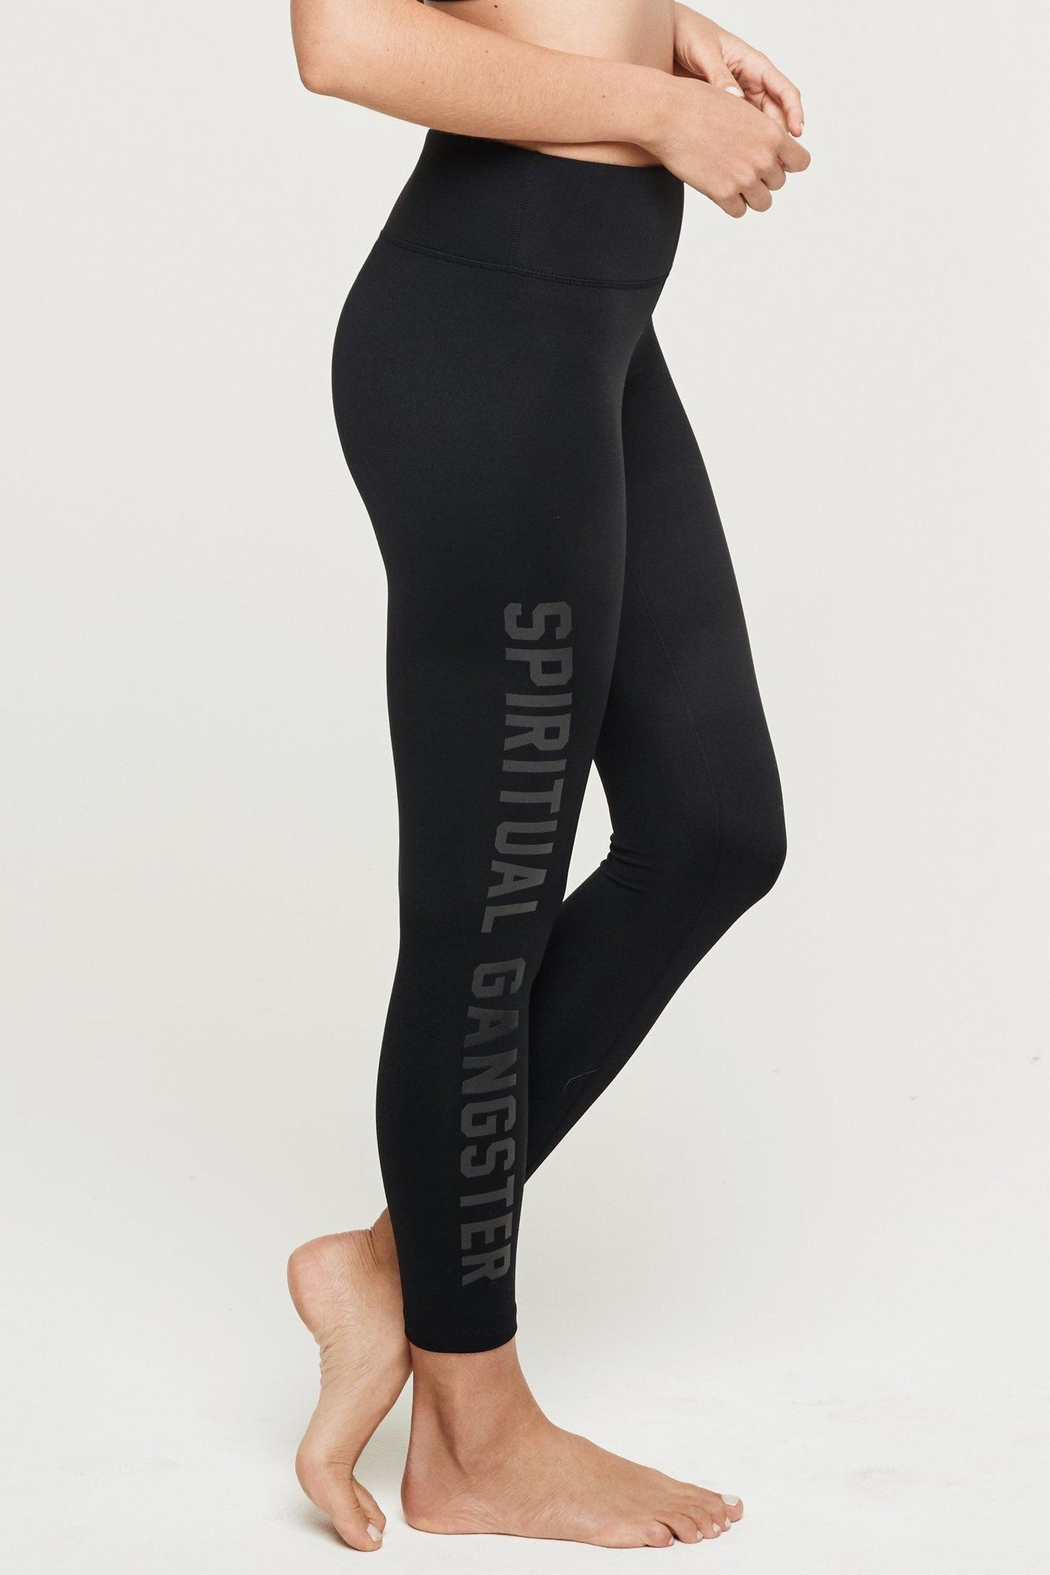 SPIRITUAL GANGSTER 7/8 High-Vibe Legging - Front Cropped Image